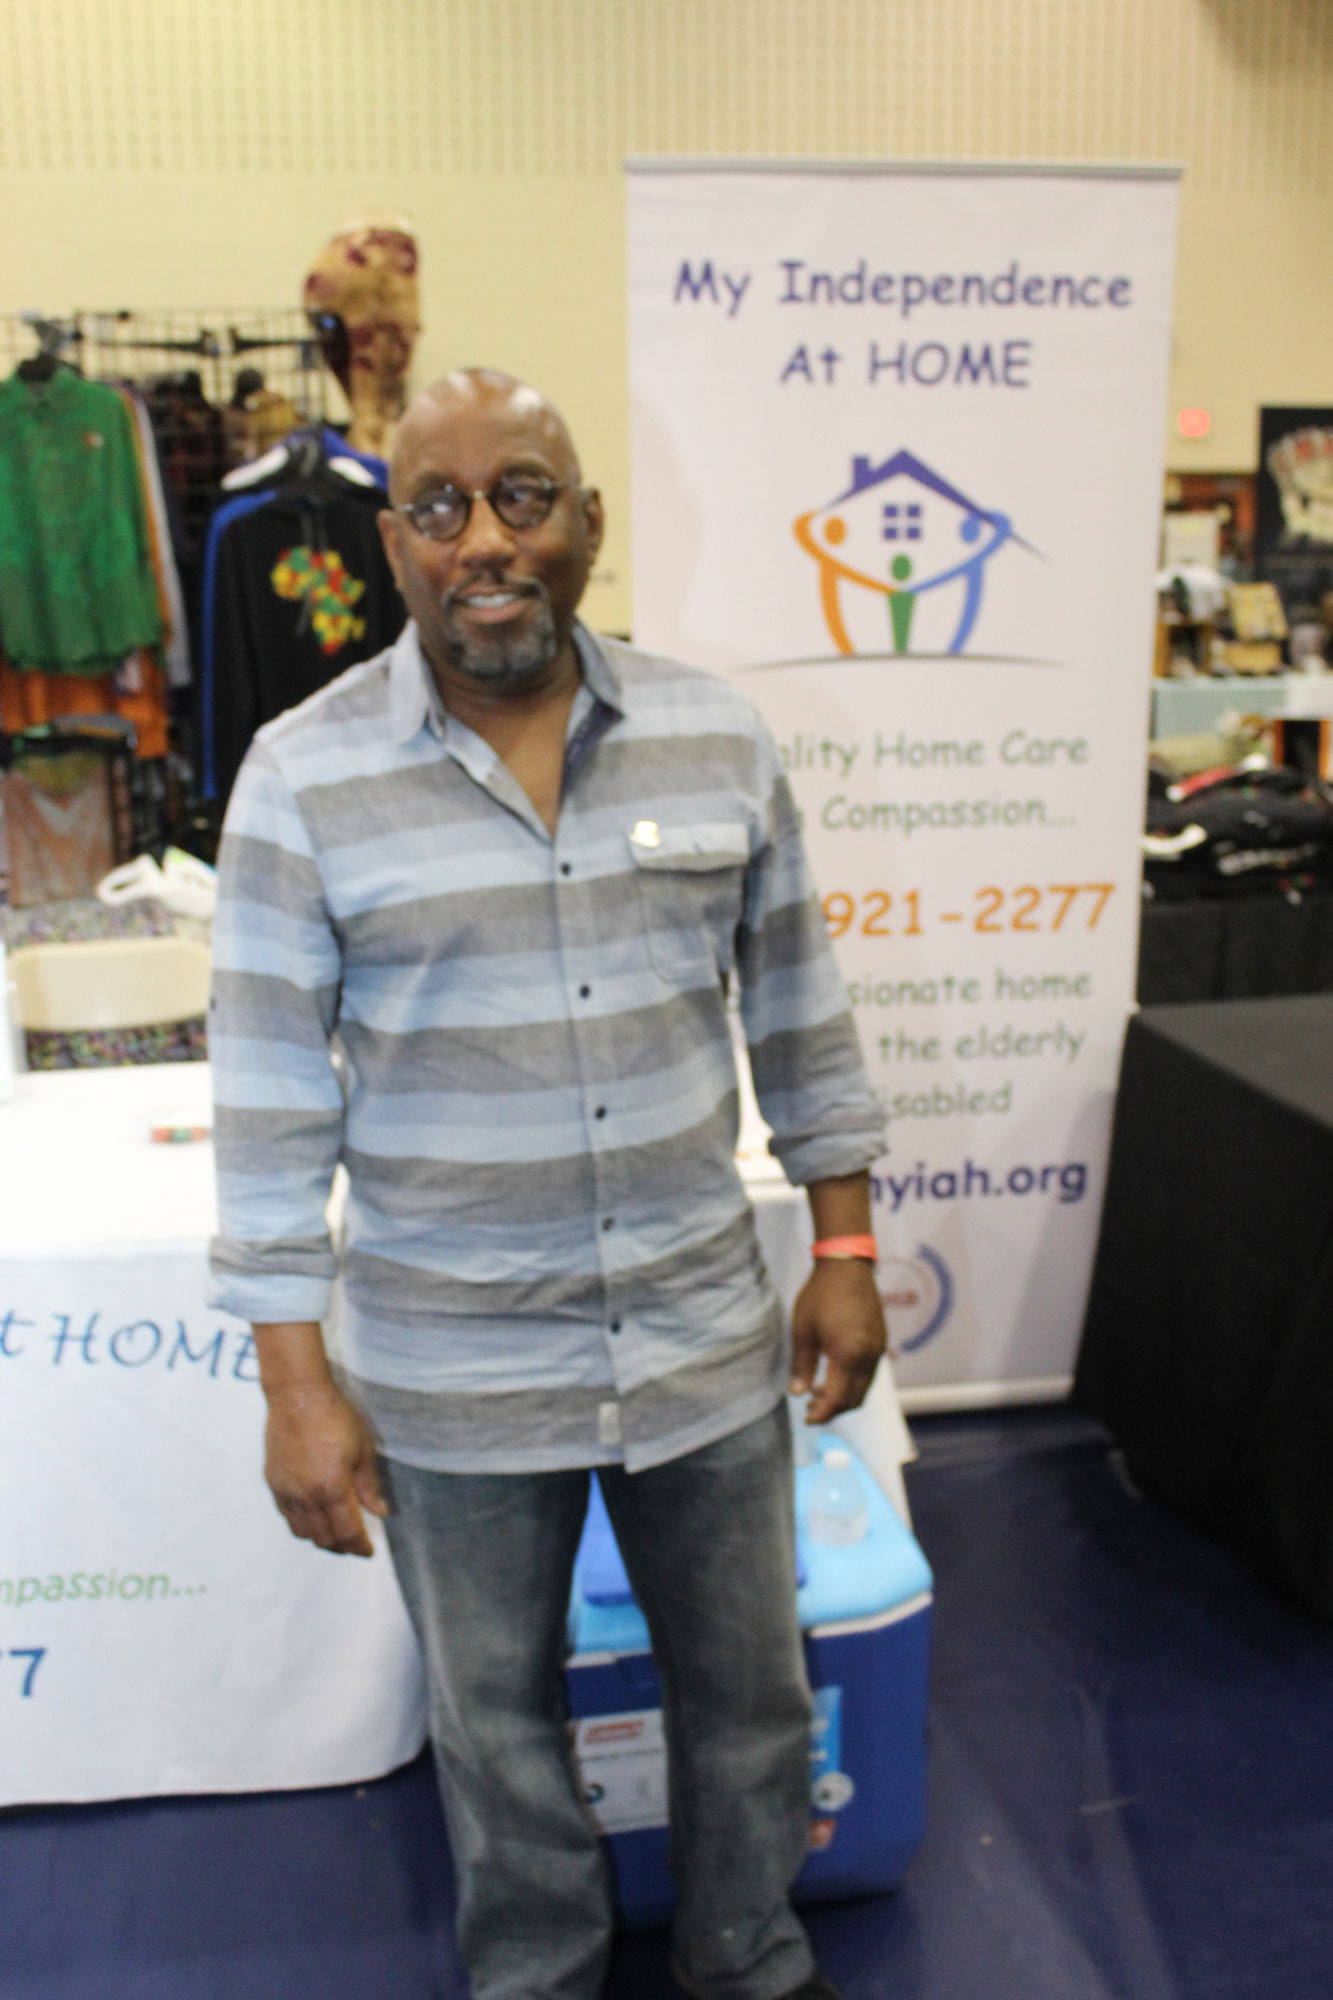 My Independence At Home, Home Health Care